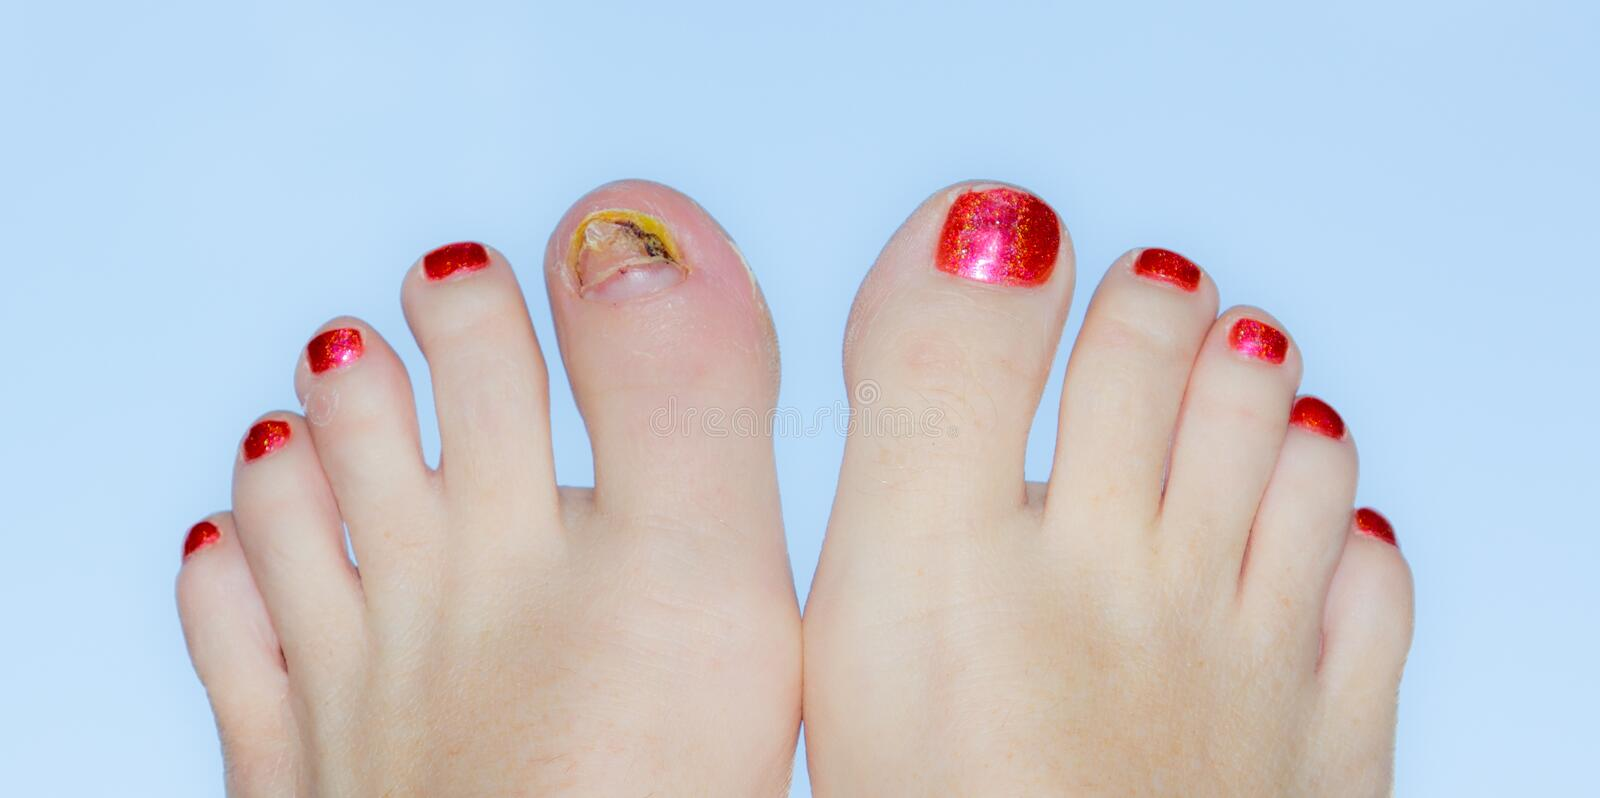 Download Polished toes with injury stock image. Image of damage - 28828673